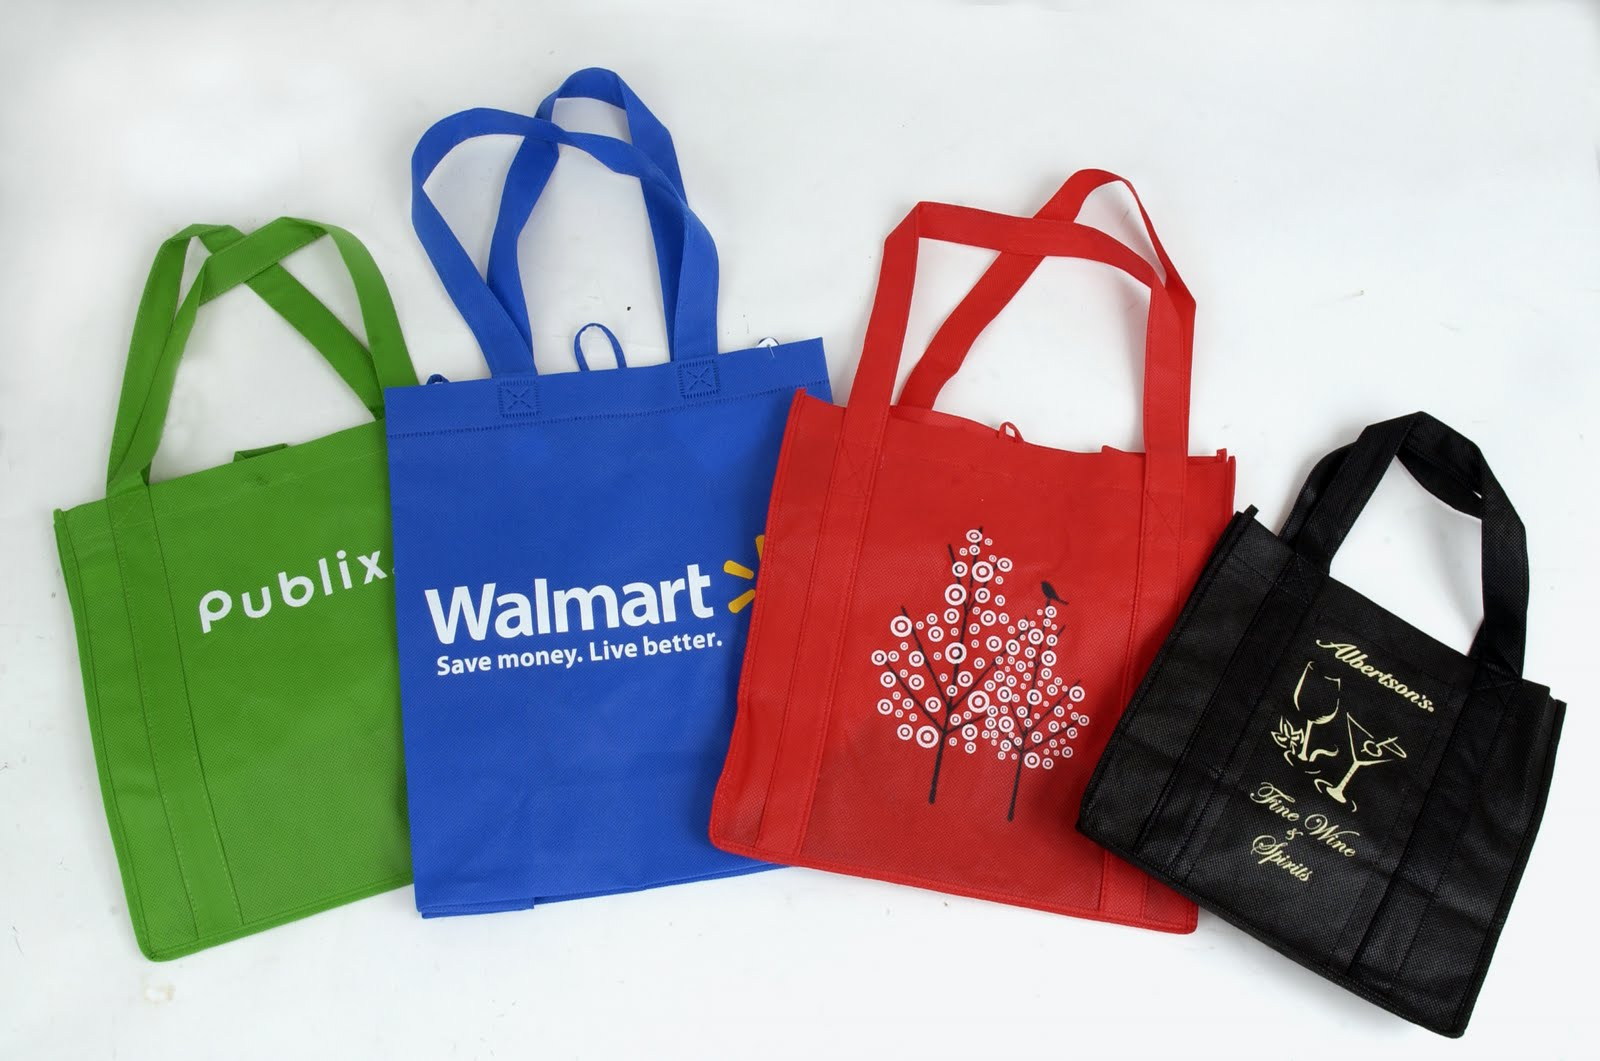 reusable bags We have tote bags, shopping bags, reusable grocery bags, produce, mesh, wine bags and more earthwise bags is your one-shop - stop for eco friendly products.